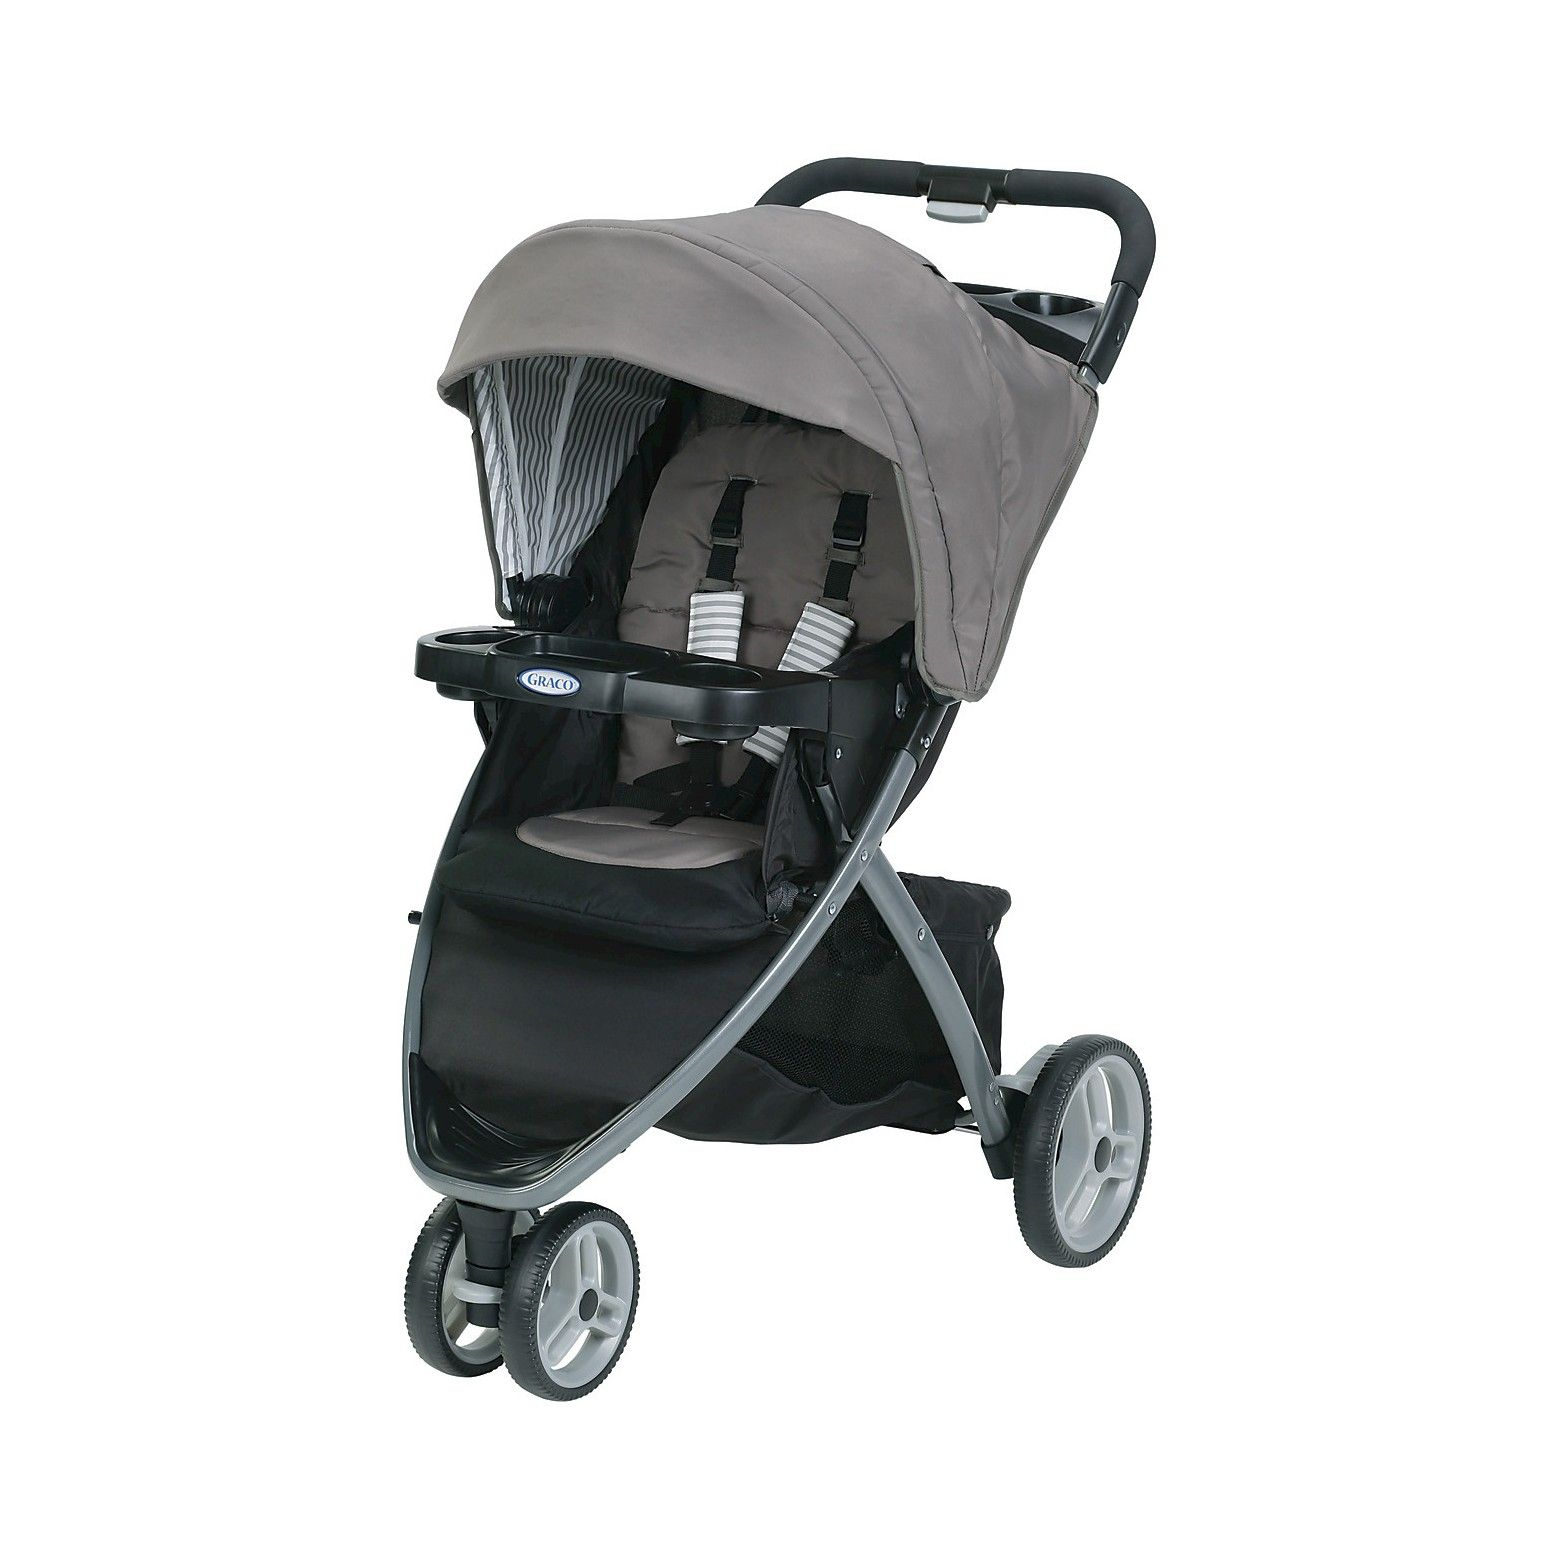 The Graco Pace Click Connect Stroller features a three